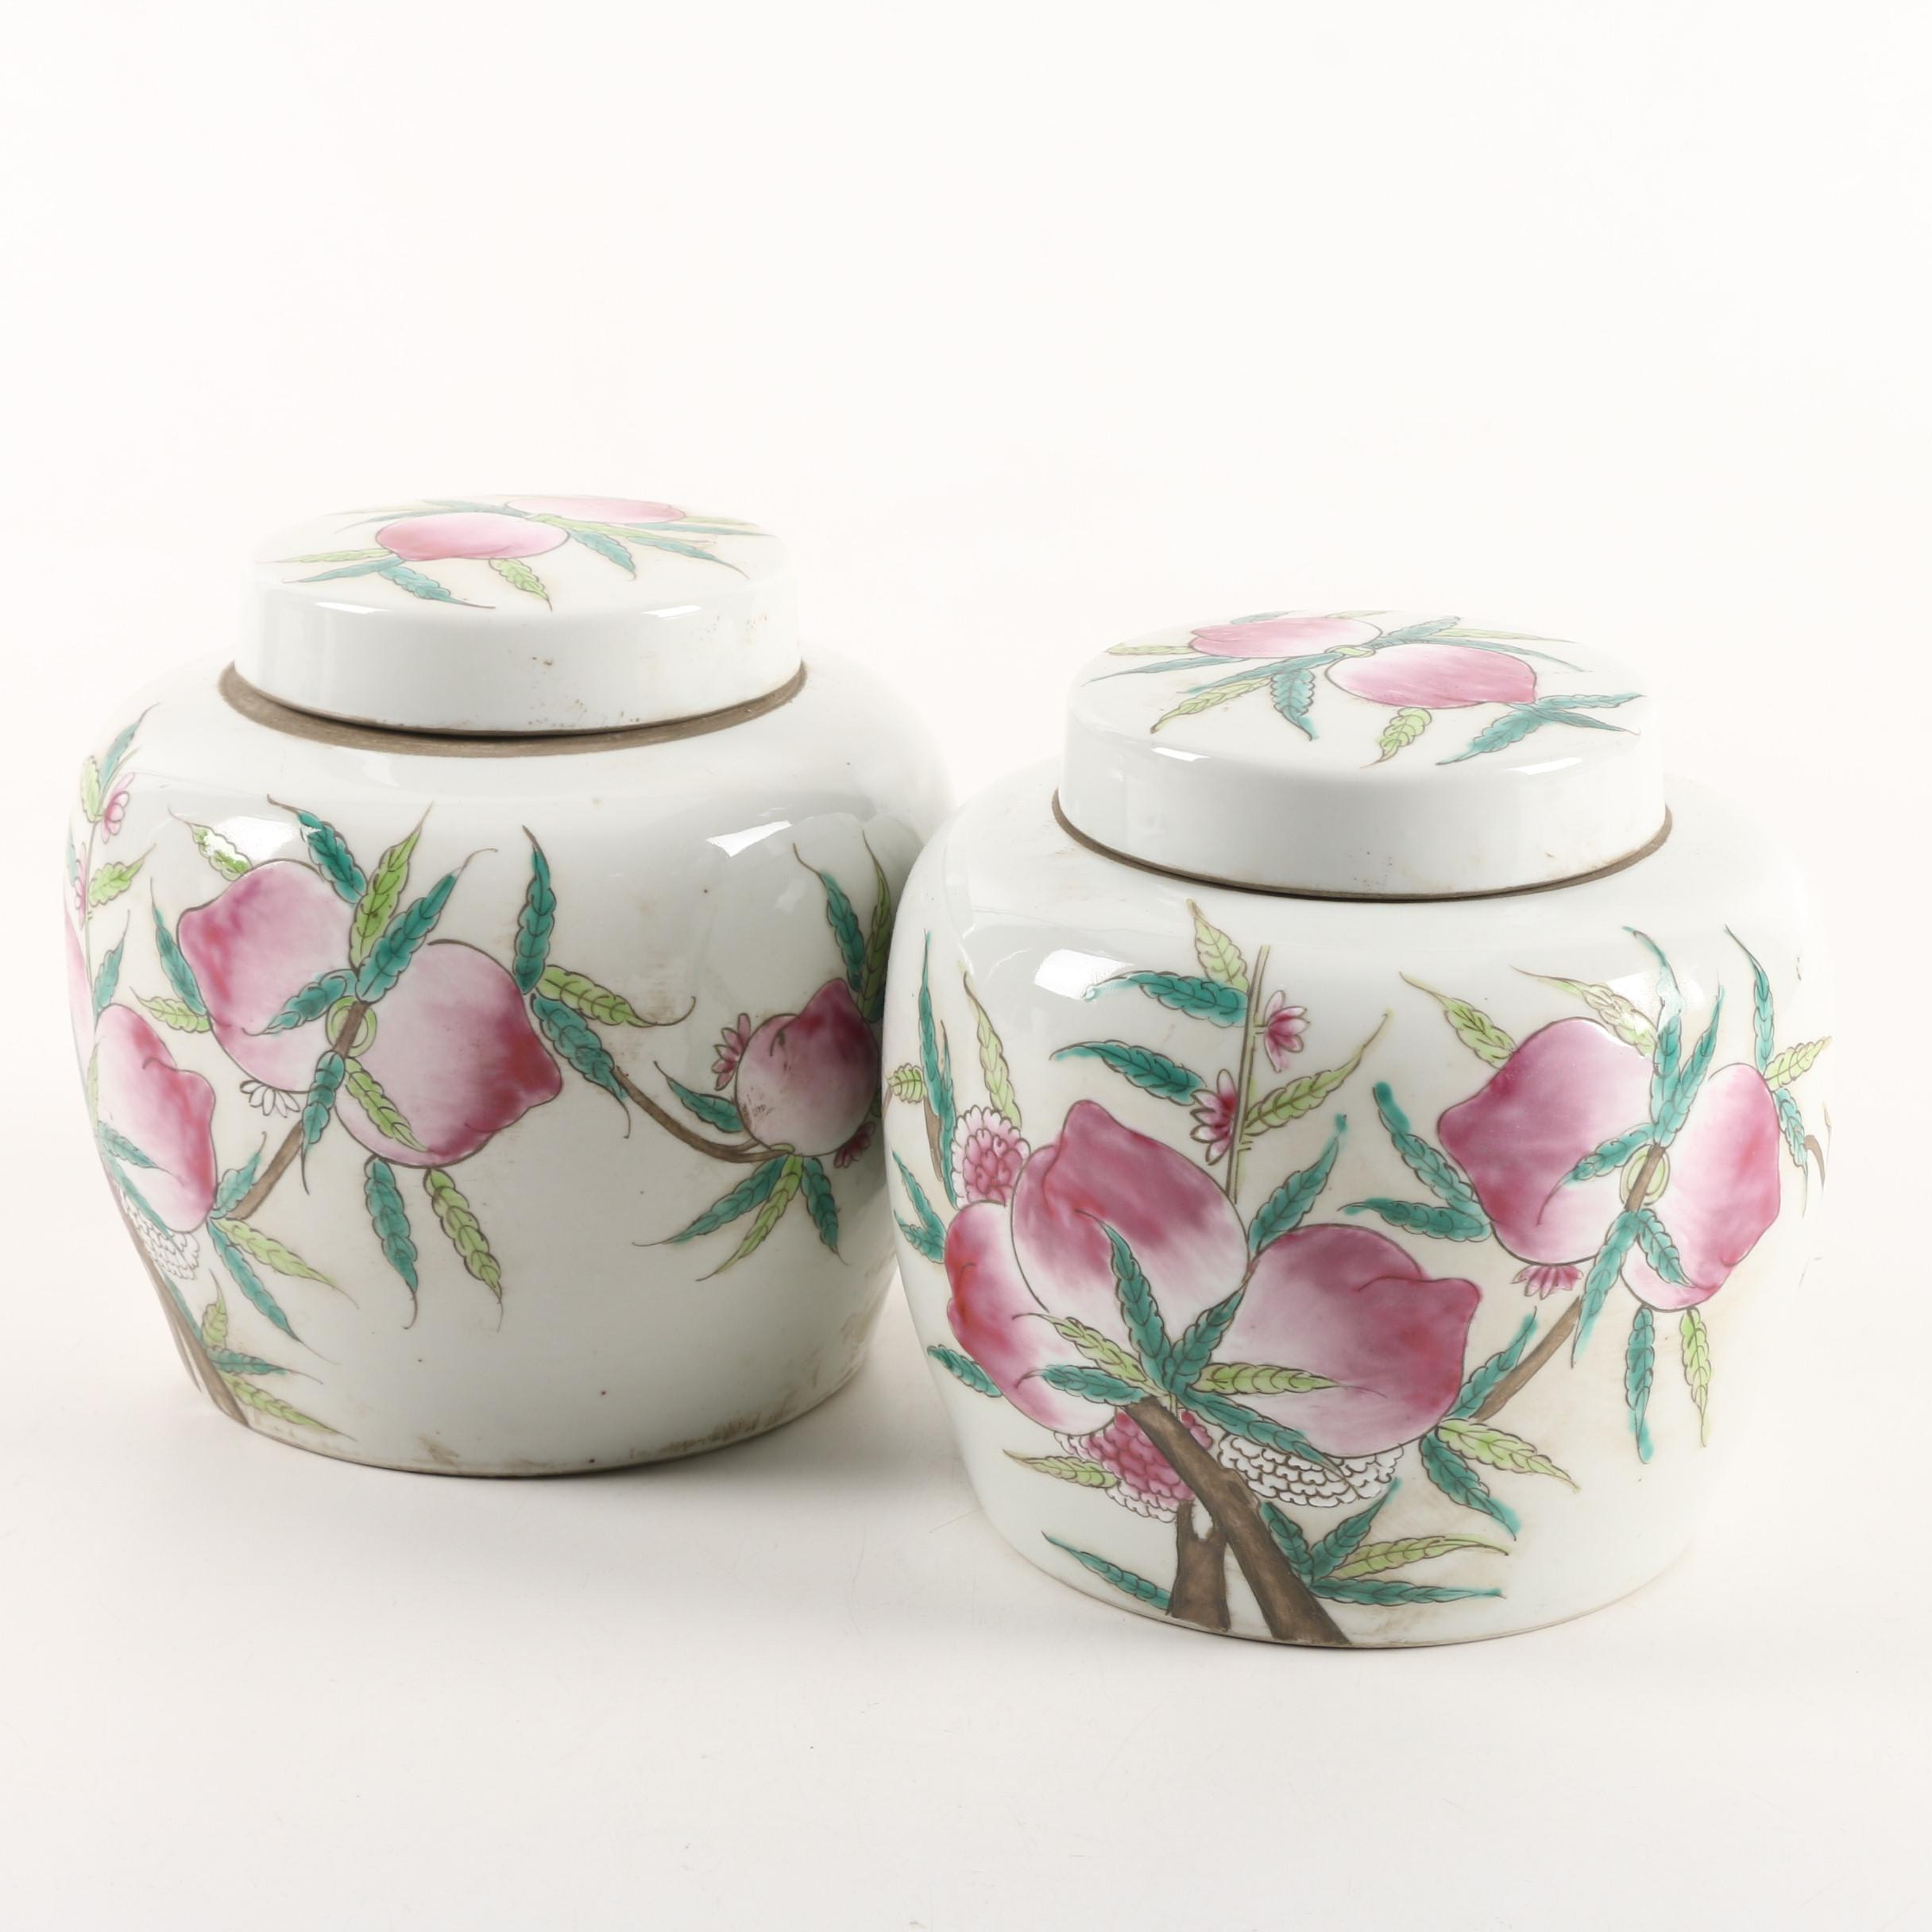 Matching Chinese Lidded Porcelain Jars